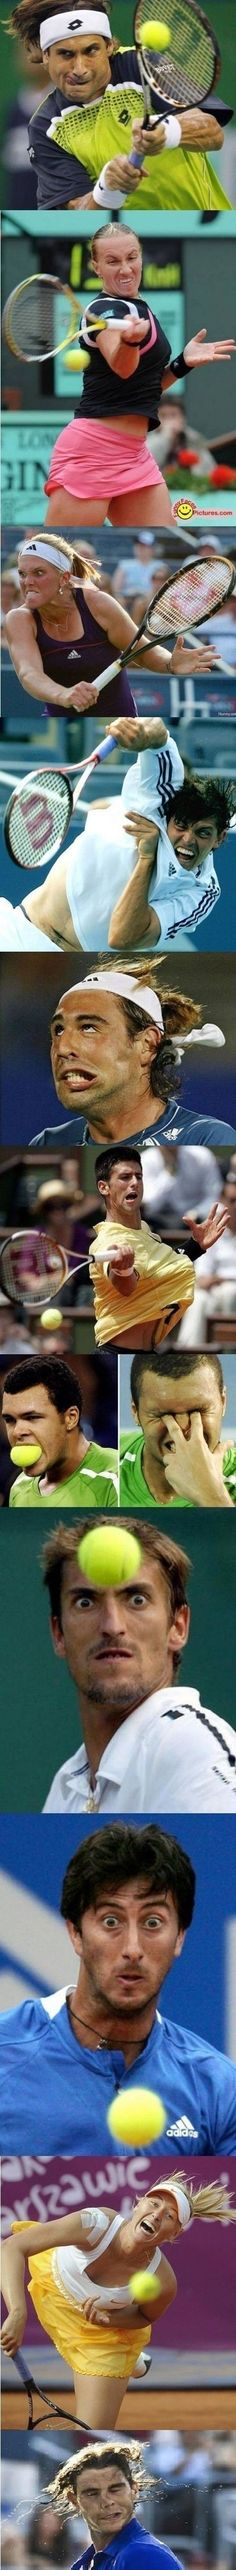 tennis:/ more entertaining than ever!!!